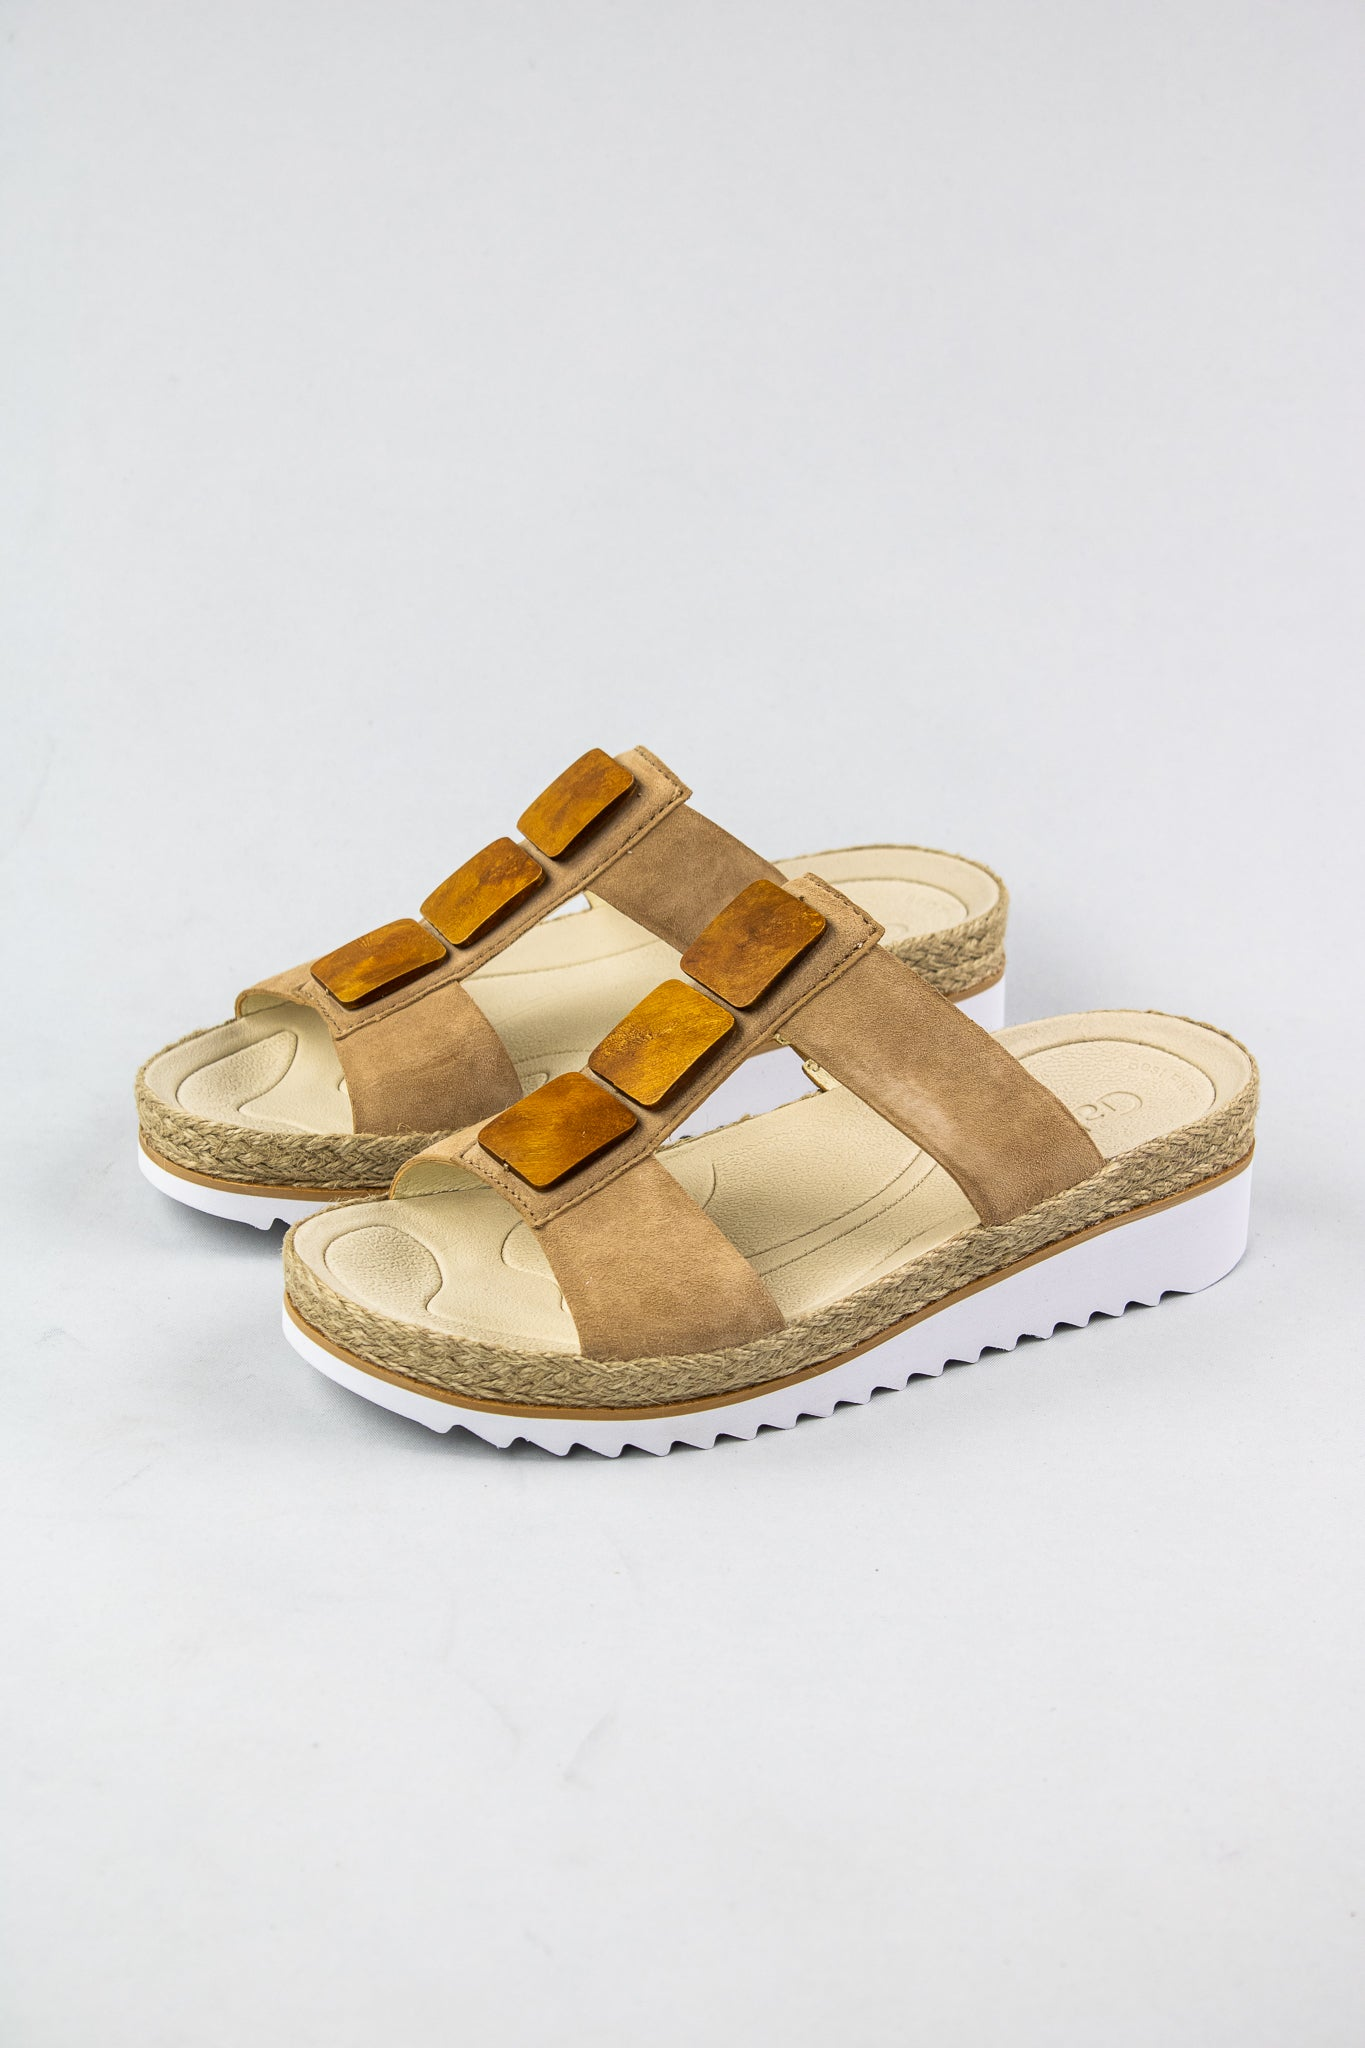 Gabor Caramel Low Wedge Sandals 63.720.14 for sale online Ireland